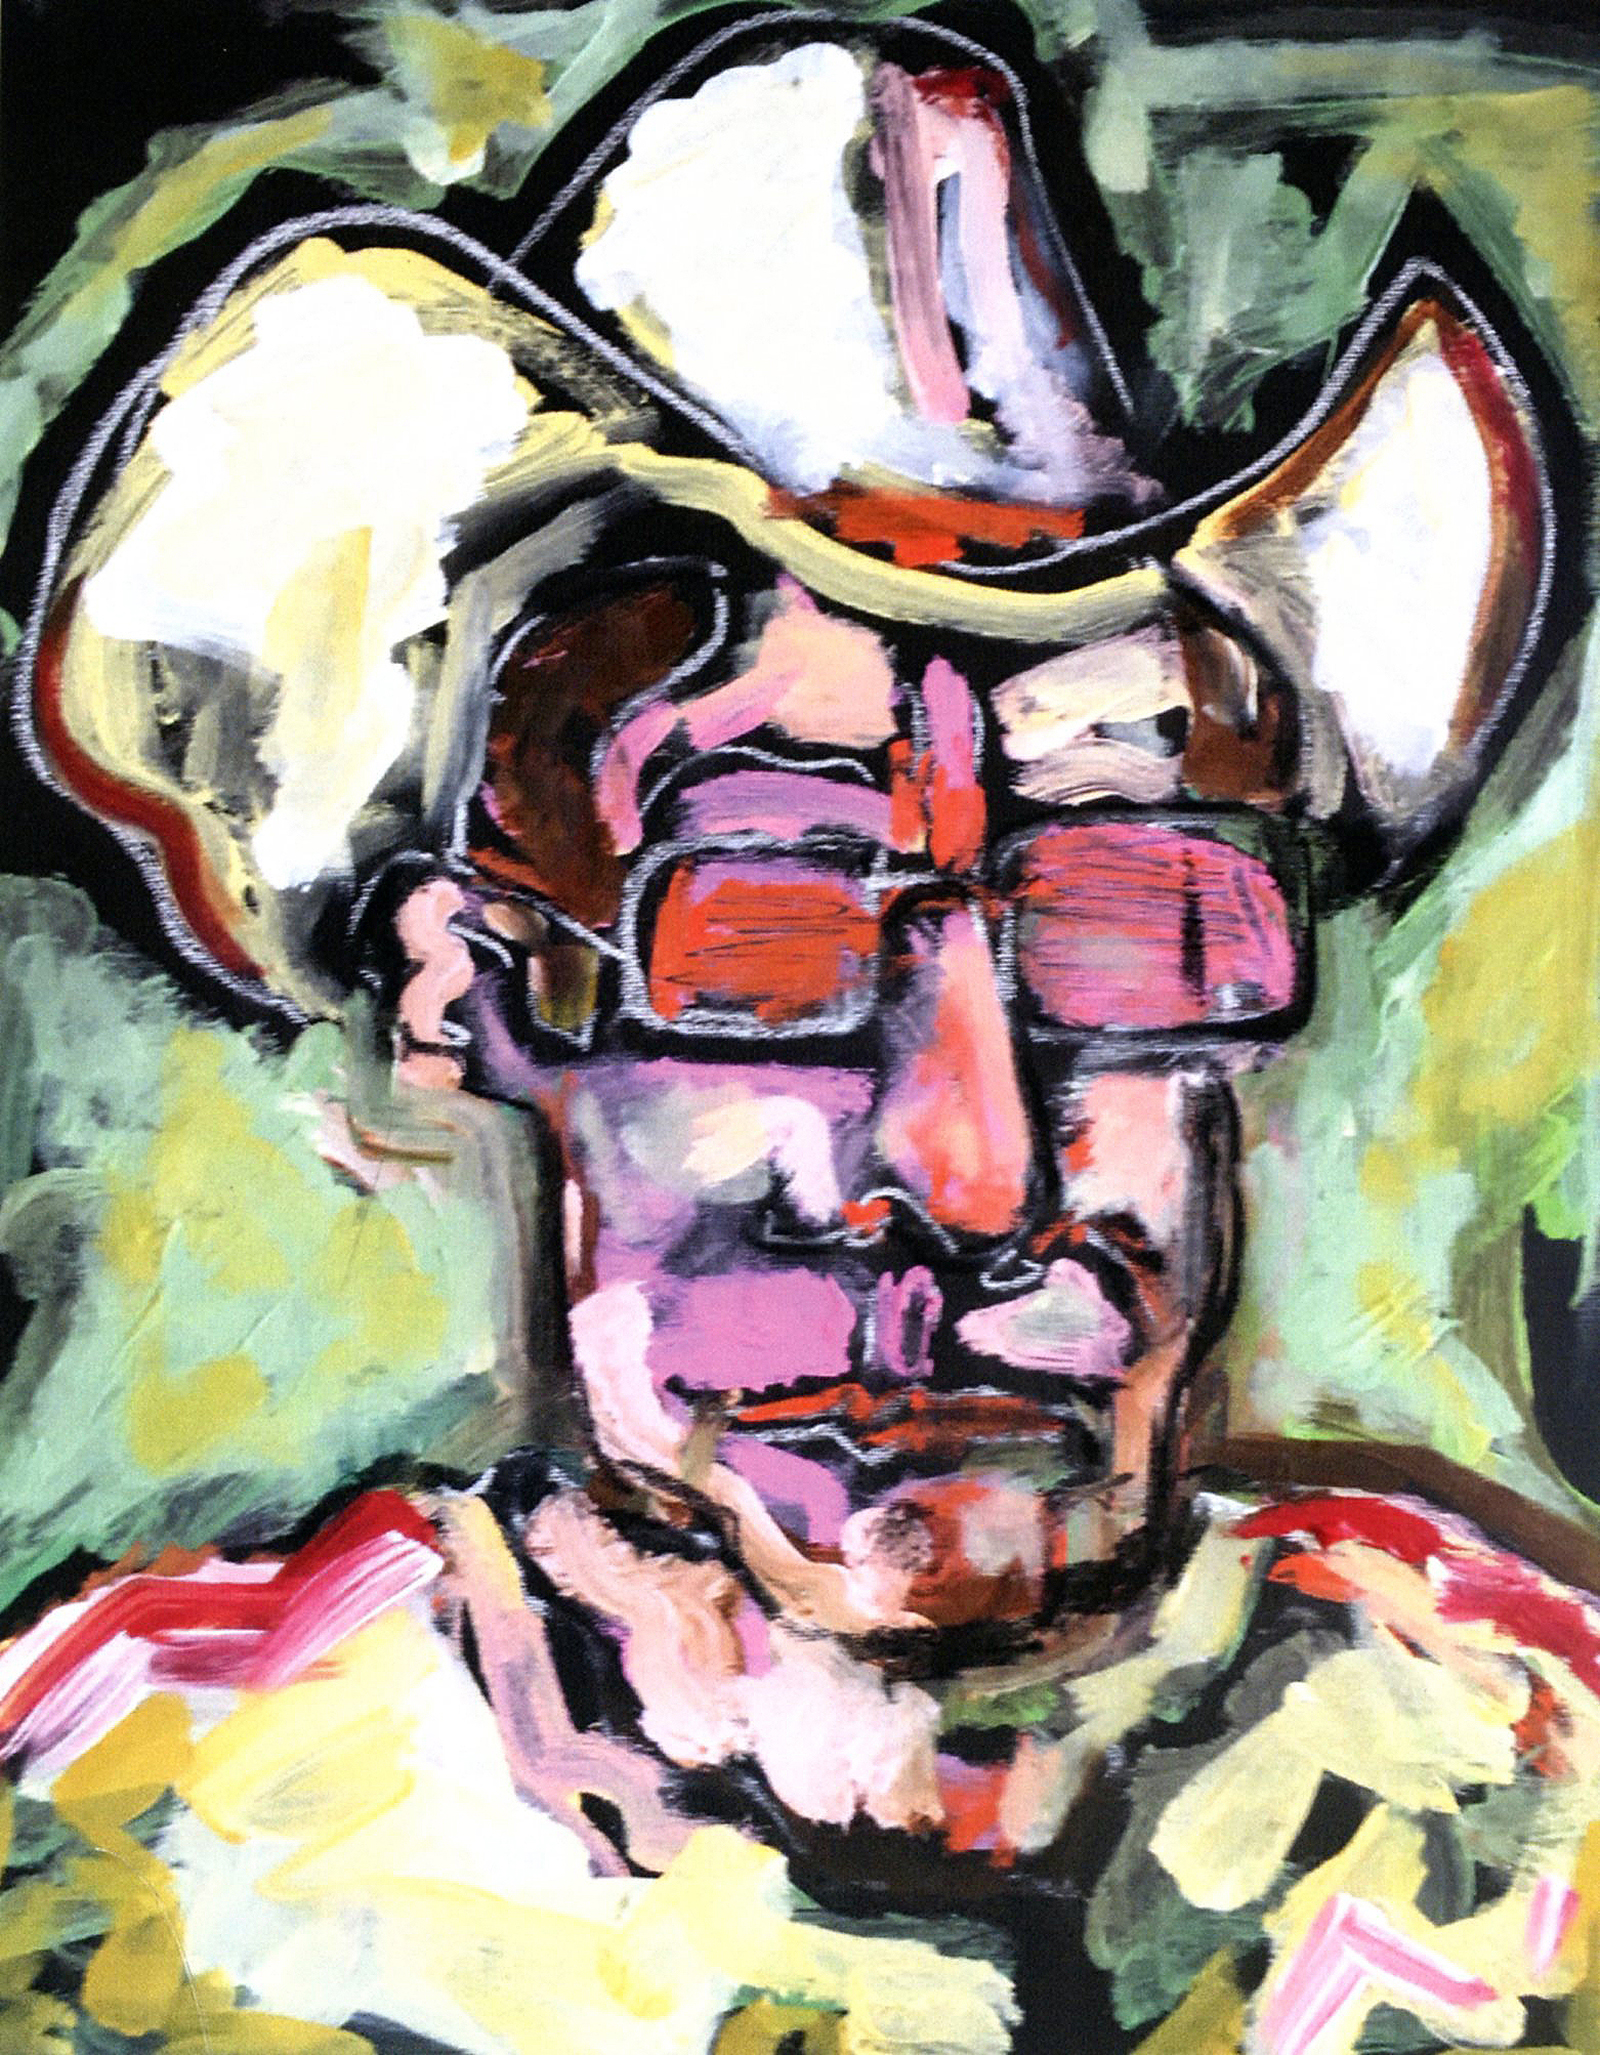 A self portrait painting by Tom Russell.